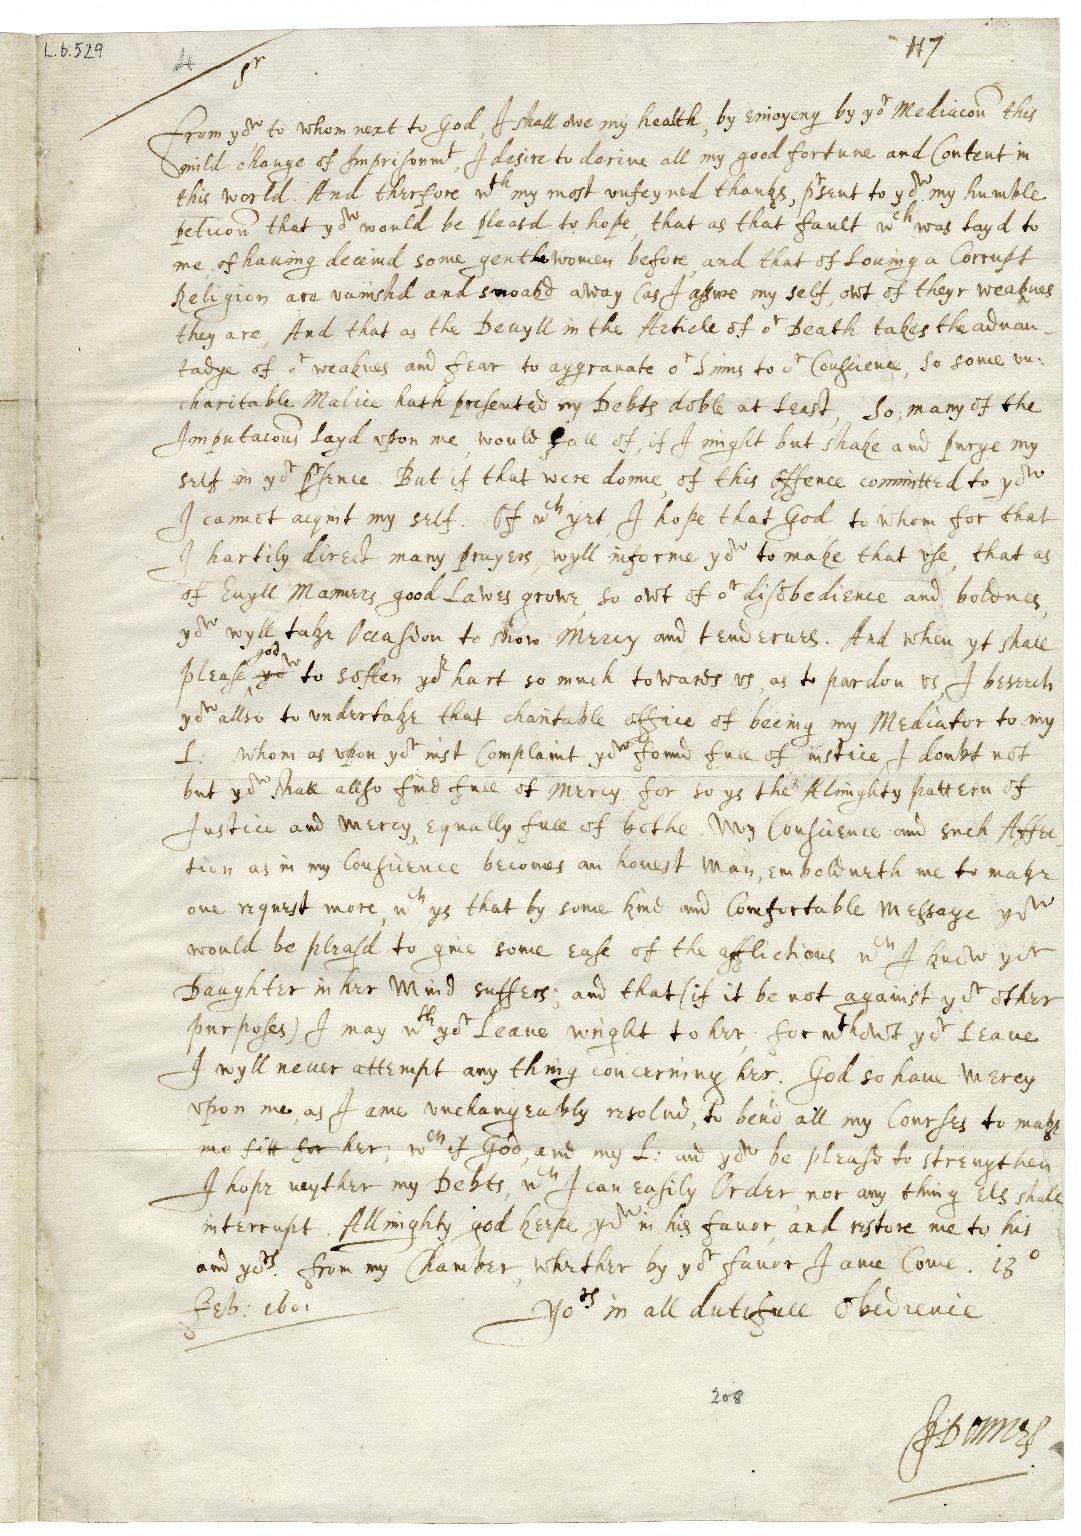 Autograph letter signed from John Donne to Sir George More [manuscript], 1601/1602 February 13.